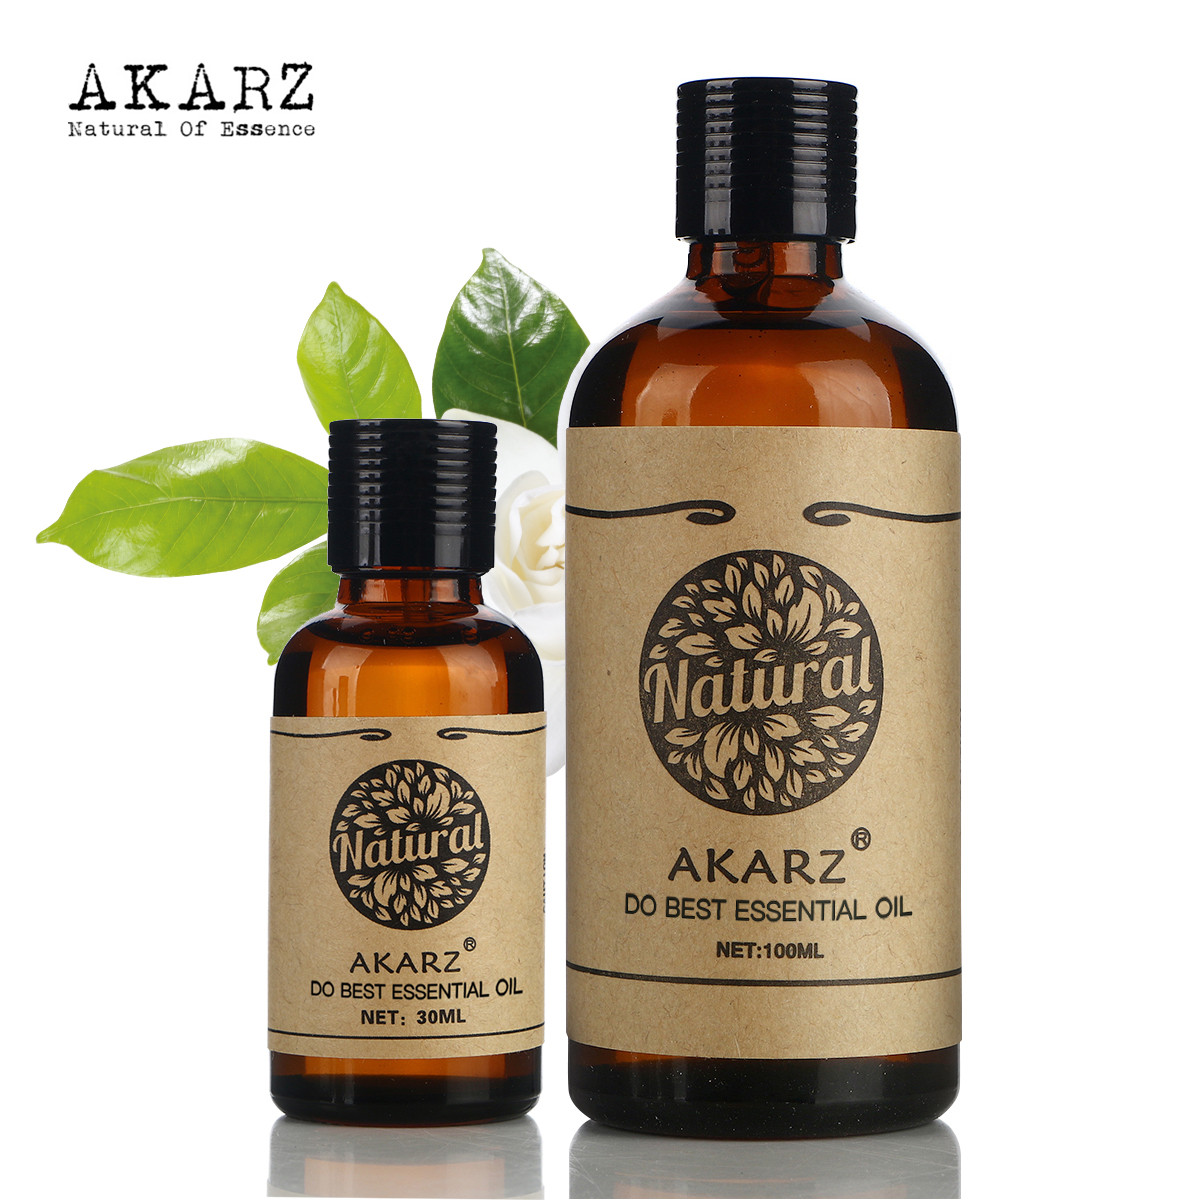 AKARZ Famous brand Moisturize Remove acnes SET Tea tree essentail oil (30ml) Jojoba oil(100ml),Fade acne marks body massage akarz famous brand tea tree essential oil natural treatment for adults organic skin body massage care tea tree oil